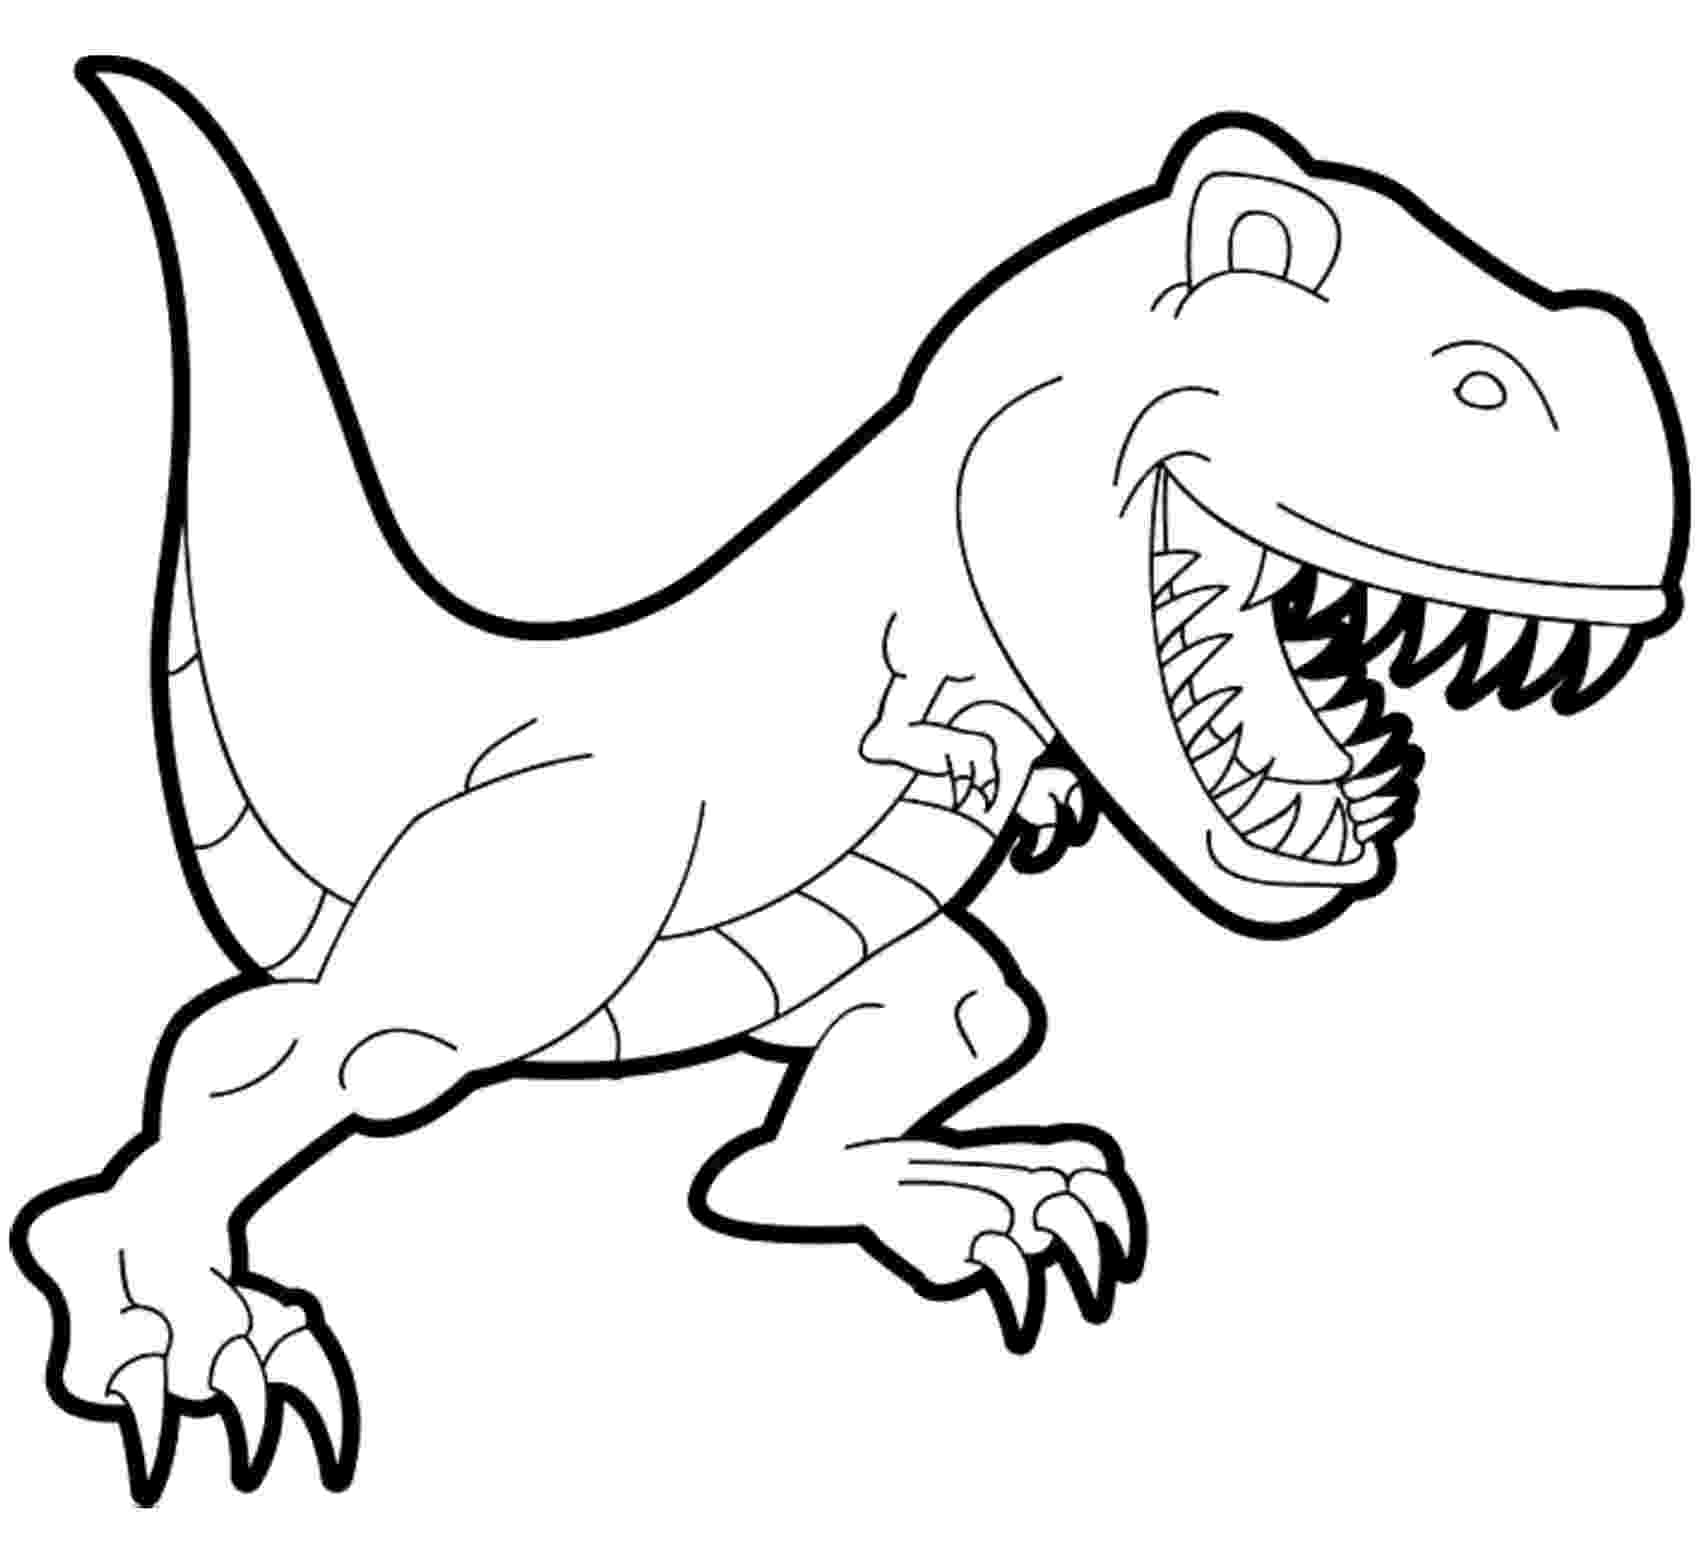 printable dinosaur pictures to color dinosaur coloring pages to download and print for free to printable dinosaur pictures color